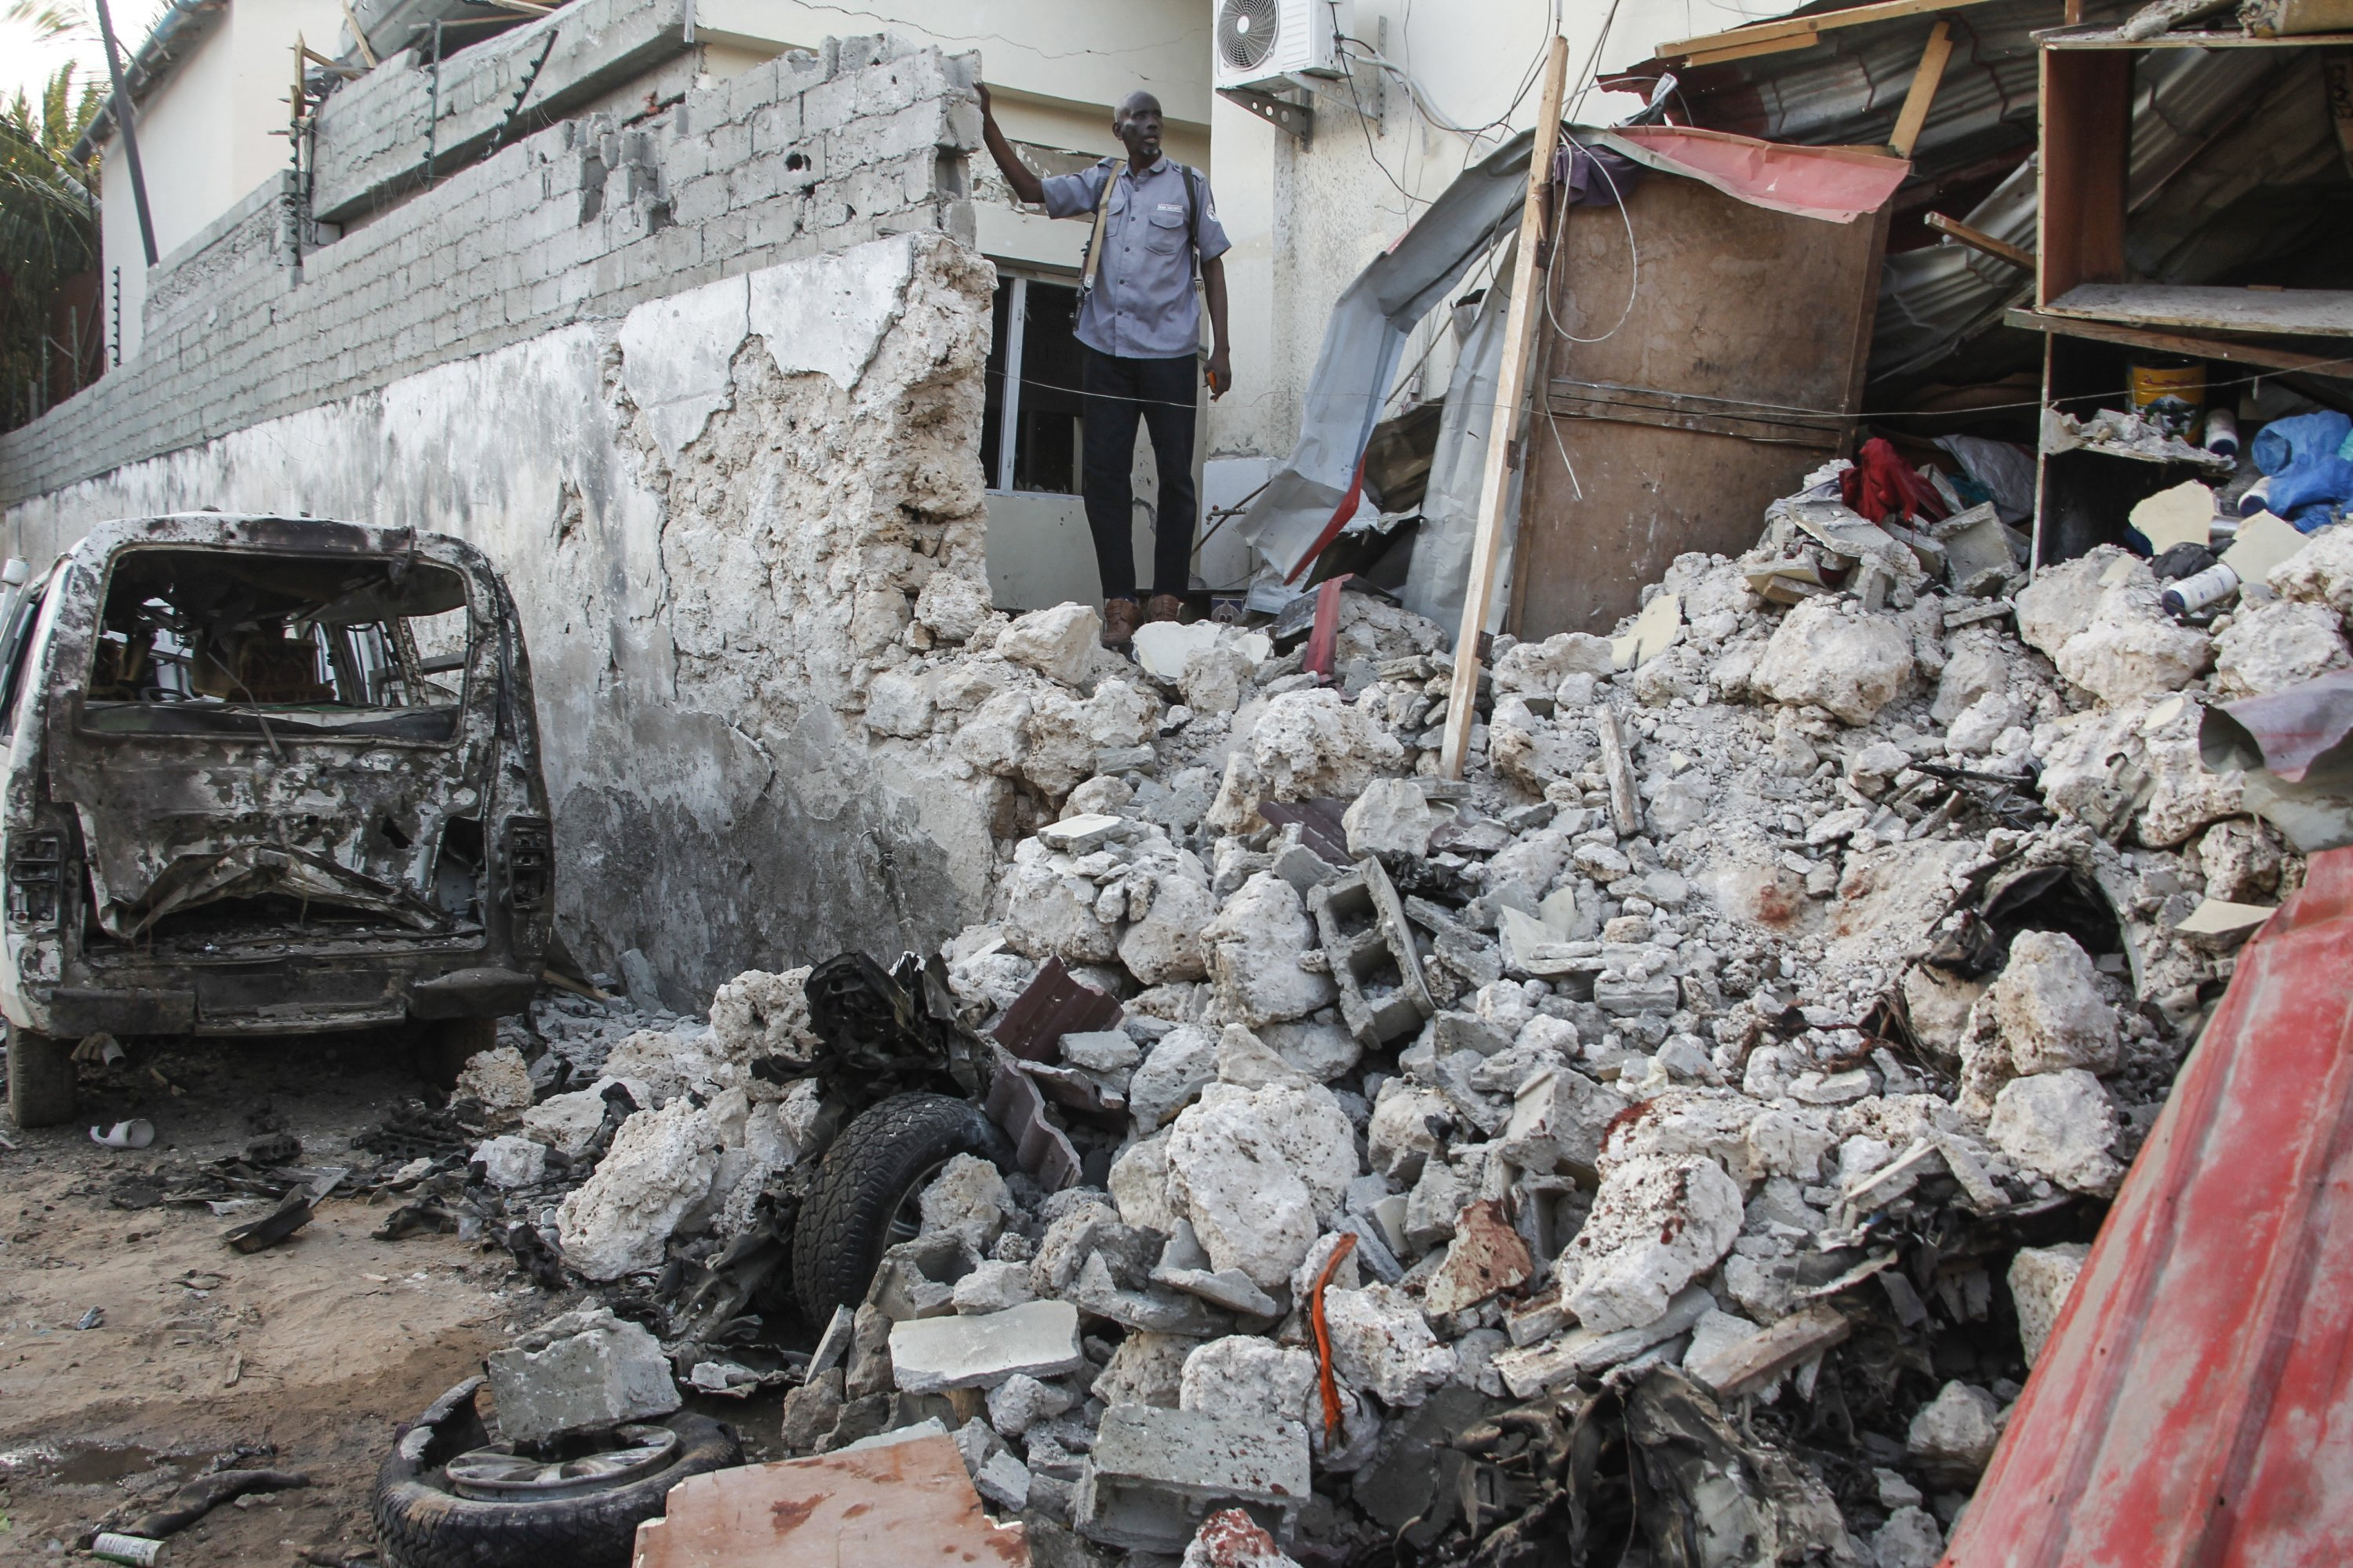 A hotel security guard stands by wreckage in the aftermath of an attack by the al-Shabab terrorist group on the Afrik hotel in Mogadishu, Somalia, Feb. 1, 2021. (AP Photo)